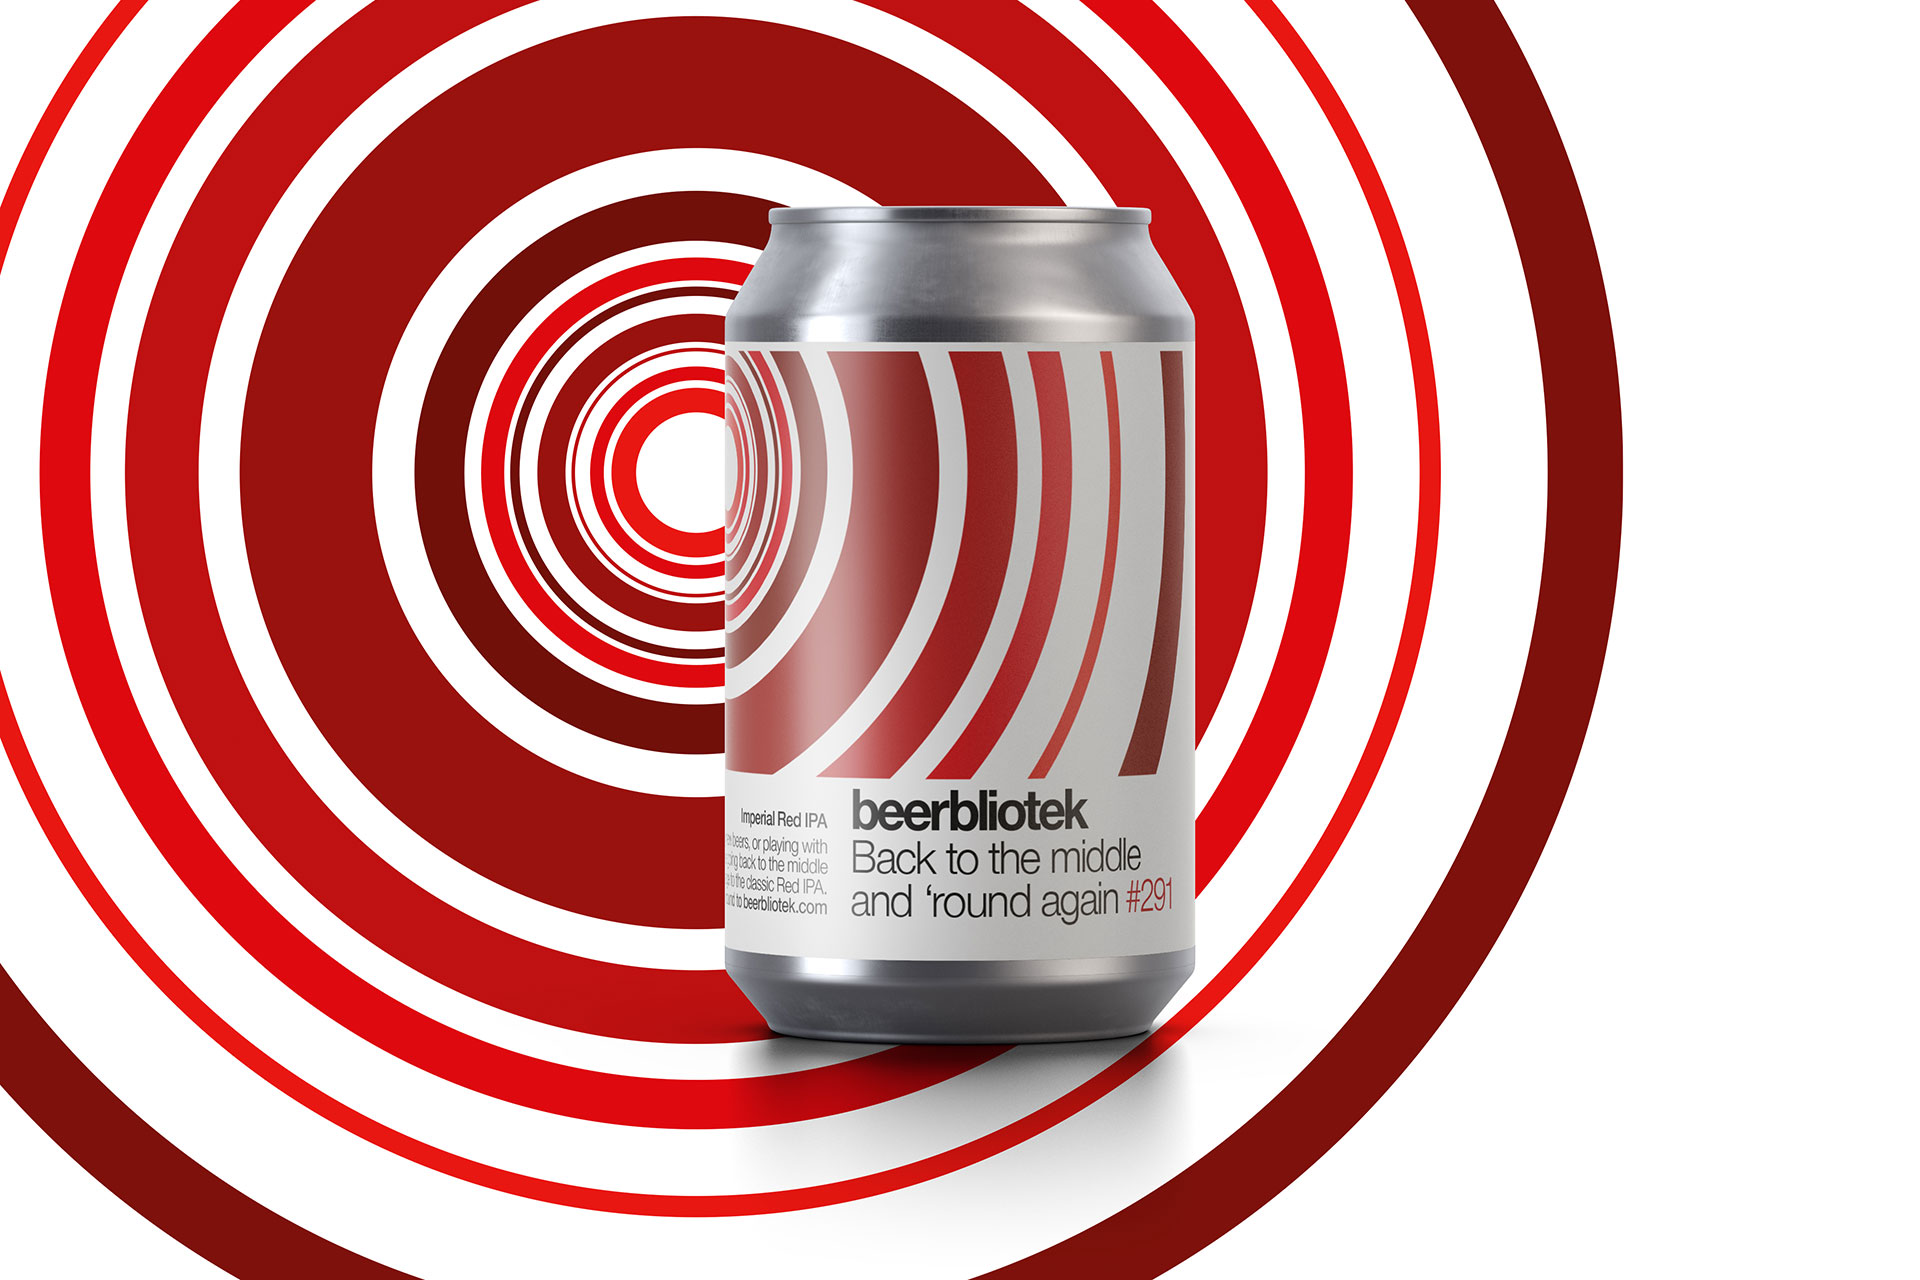 A marketing can packshot of Back to the middle and 'round again, a design for a Red IPA done by Darryl de Necker for Swedish Craft Brewery Beerbliotek.